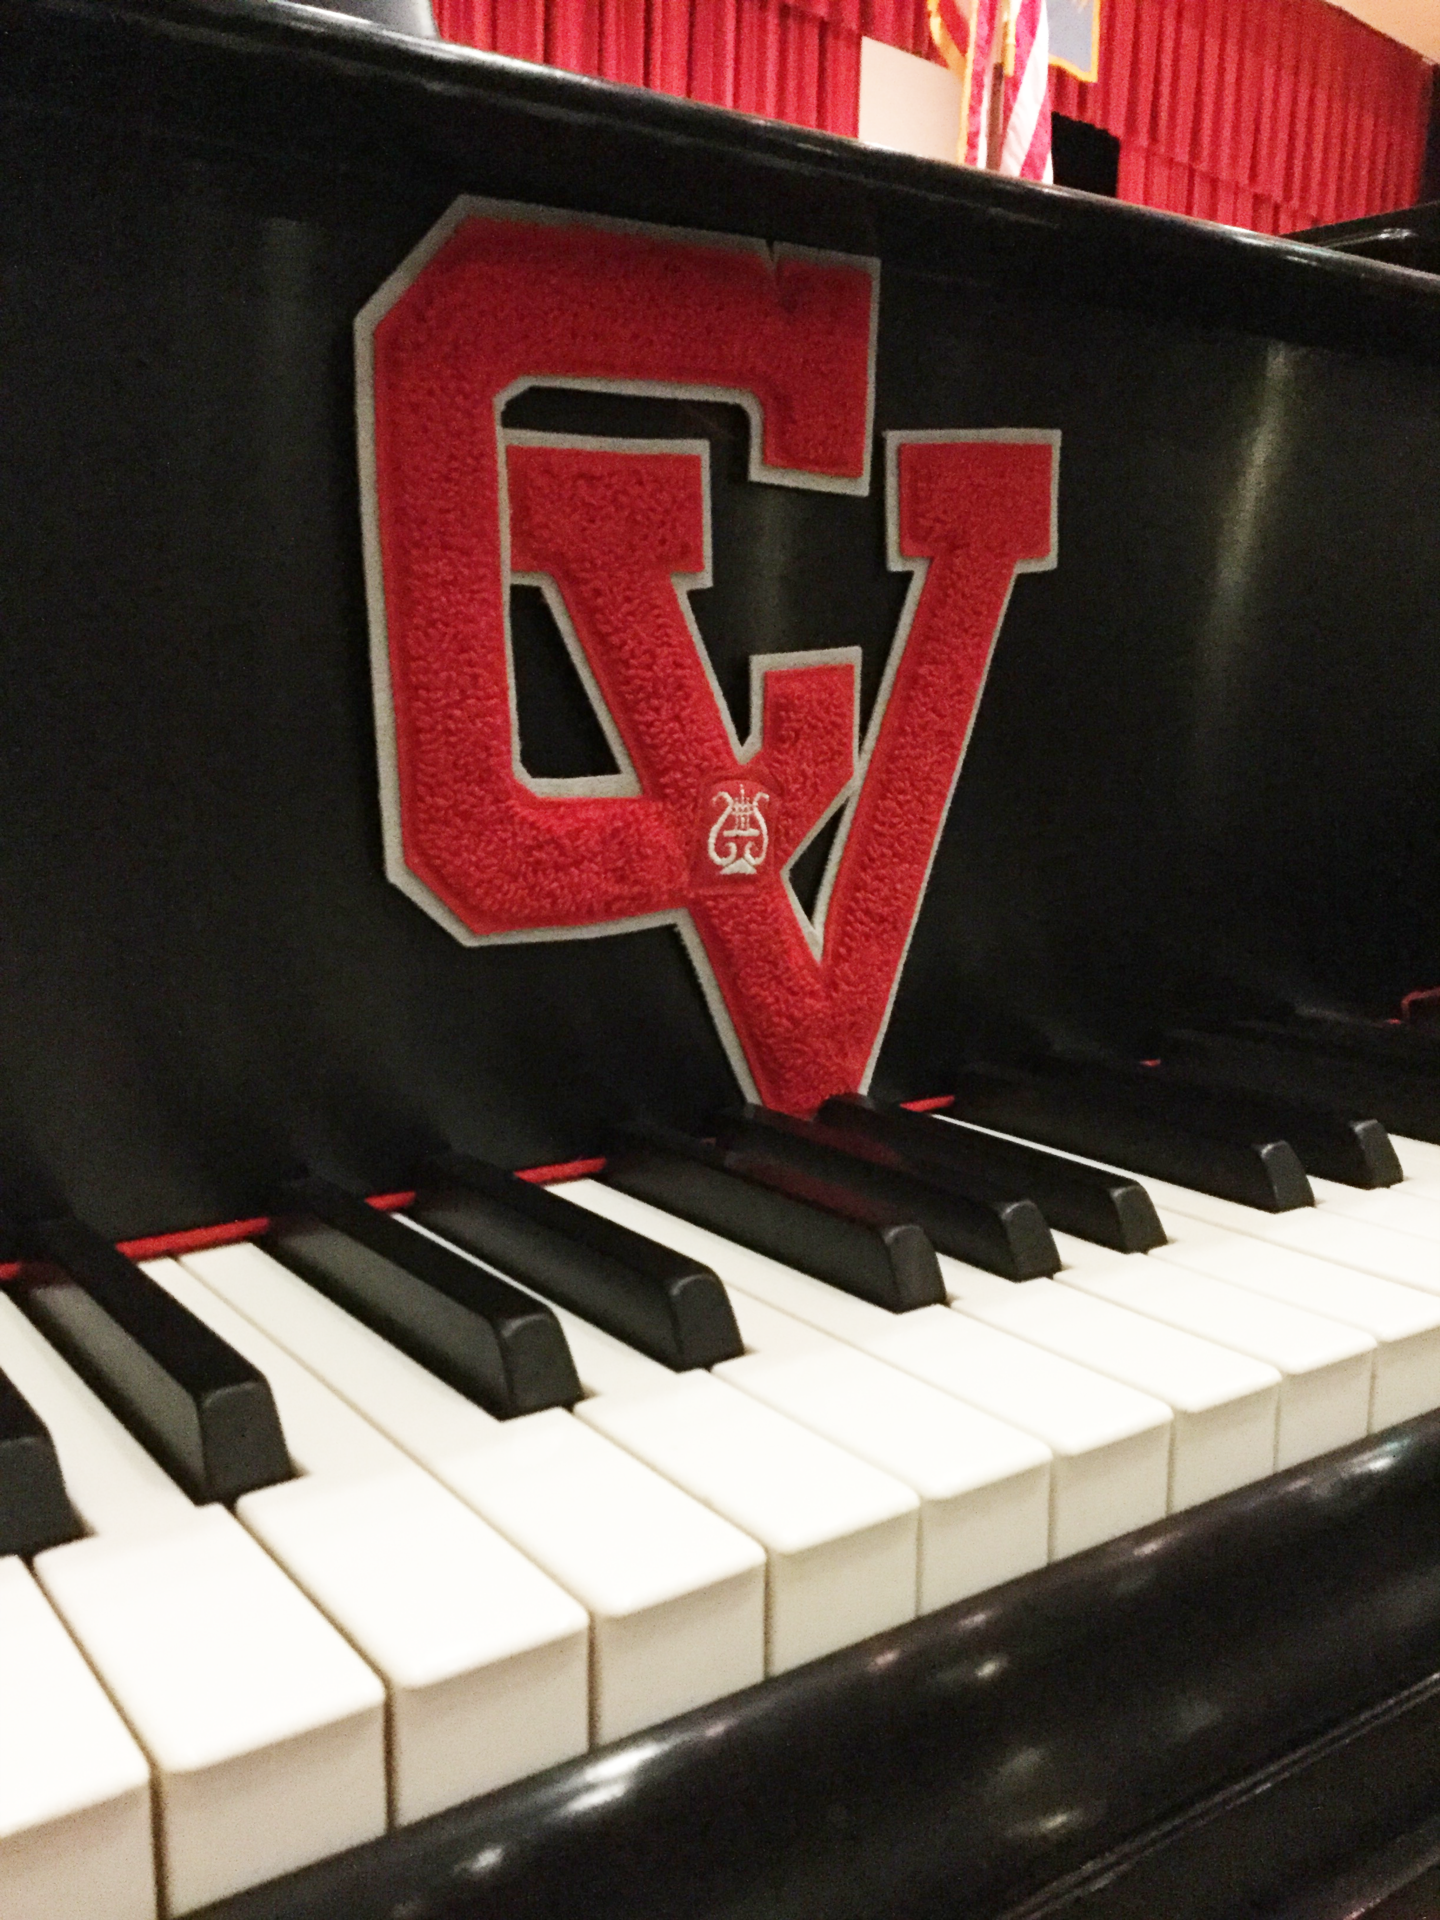 c v logo on piano